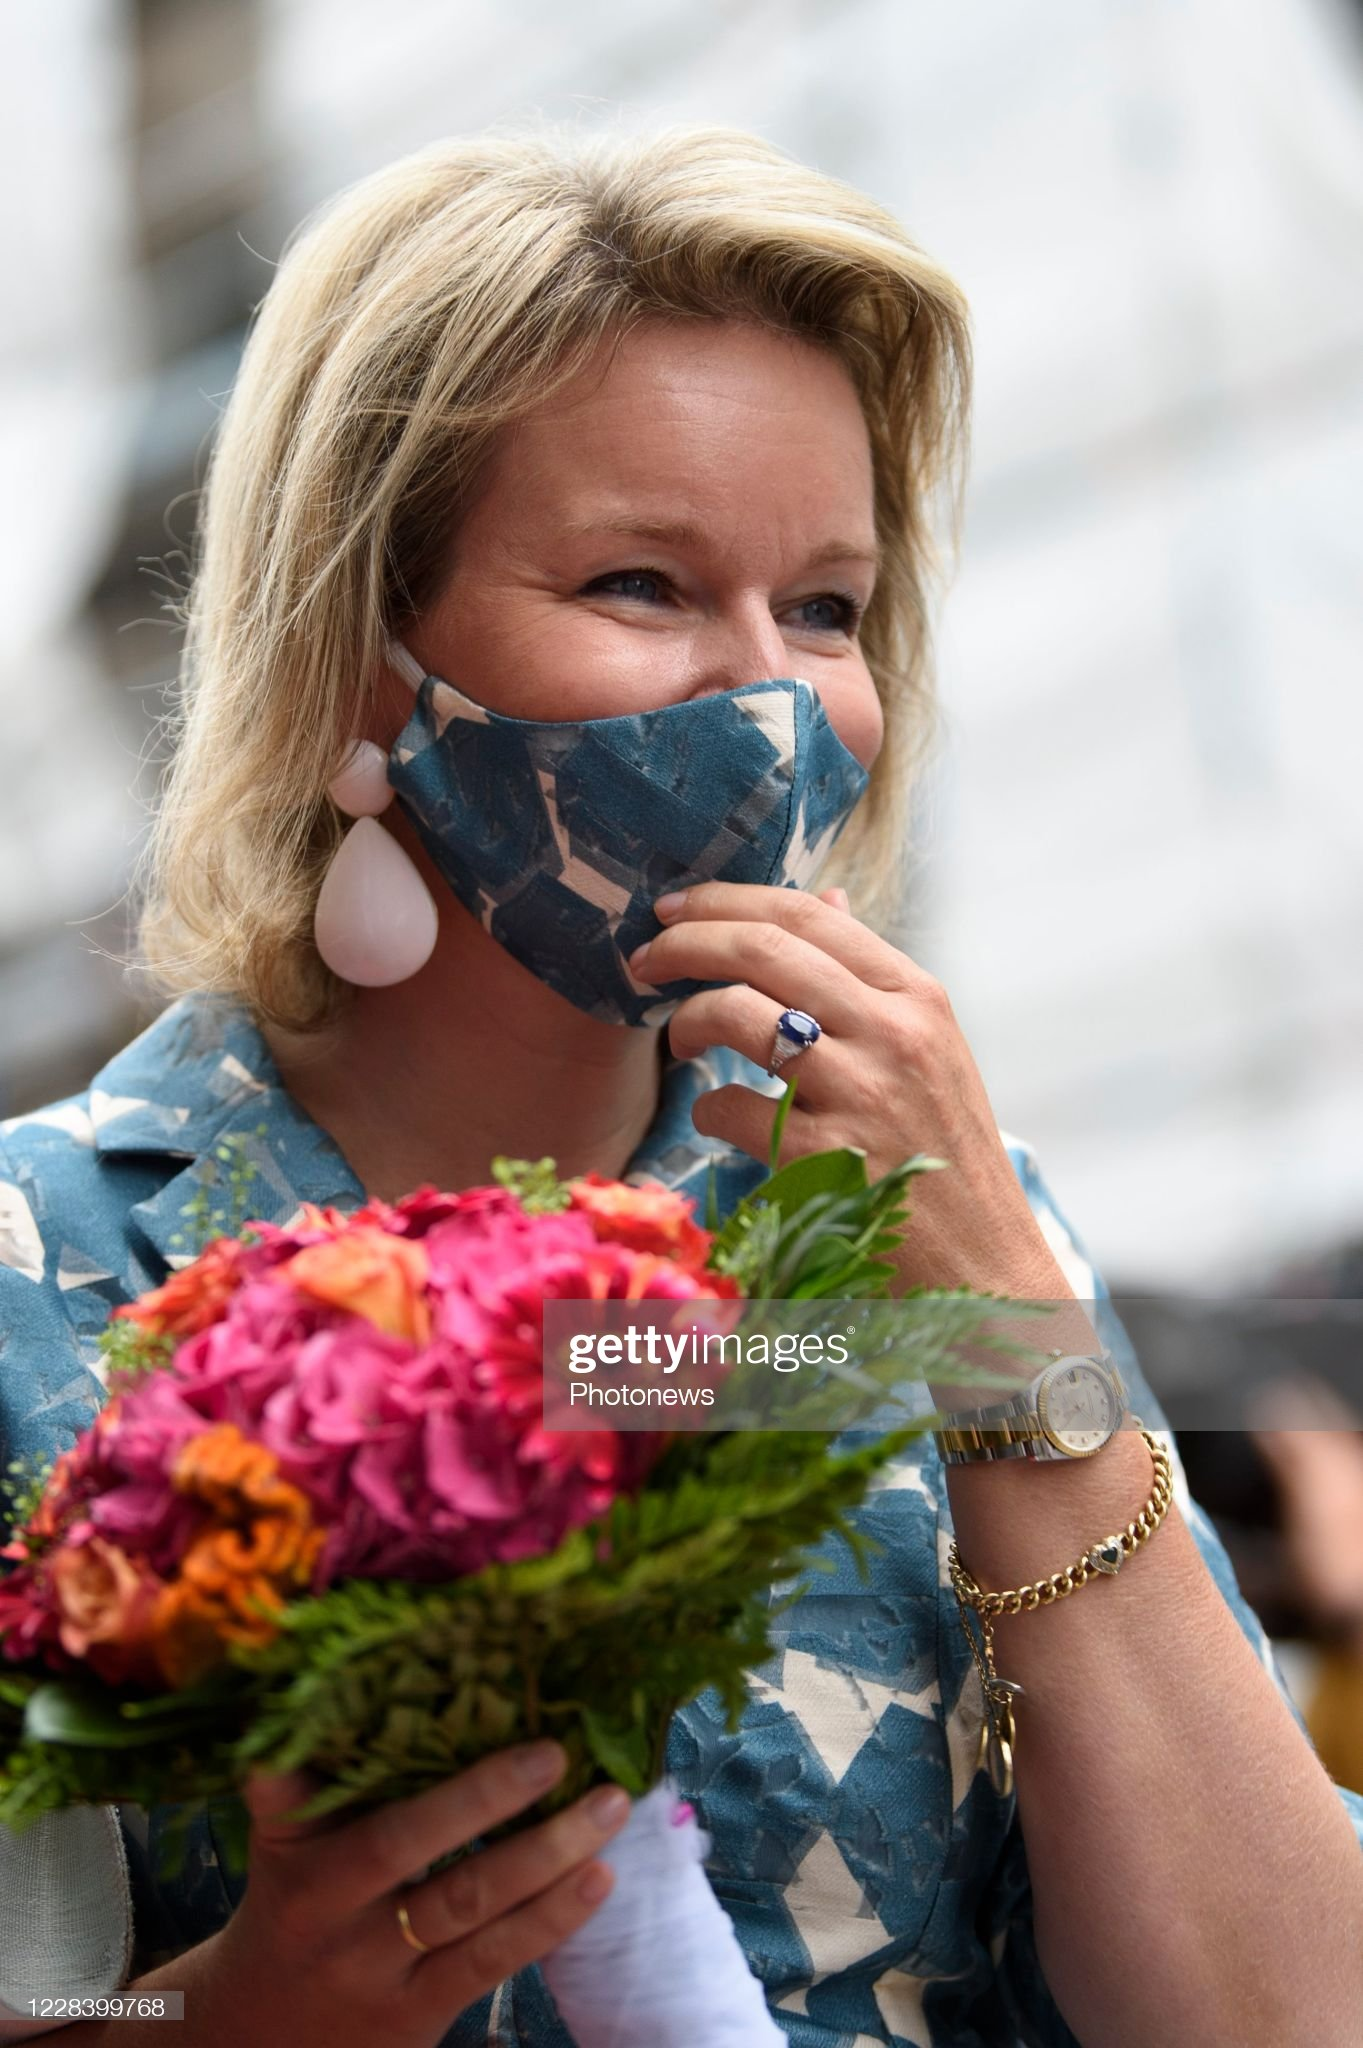 opening-of-the-new-wikifin-lab-in-the-presence-of-the-queen-mathilde-picture-id1228399768